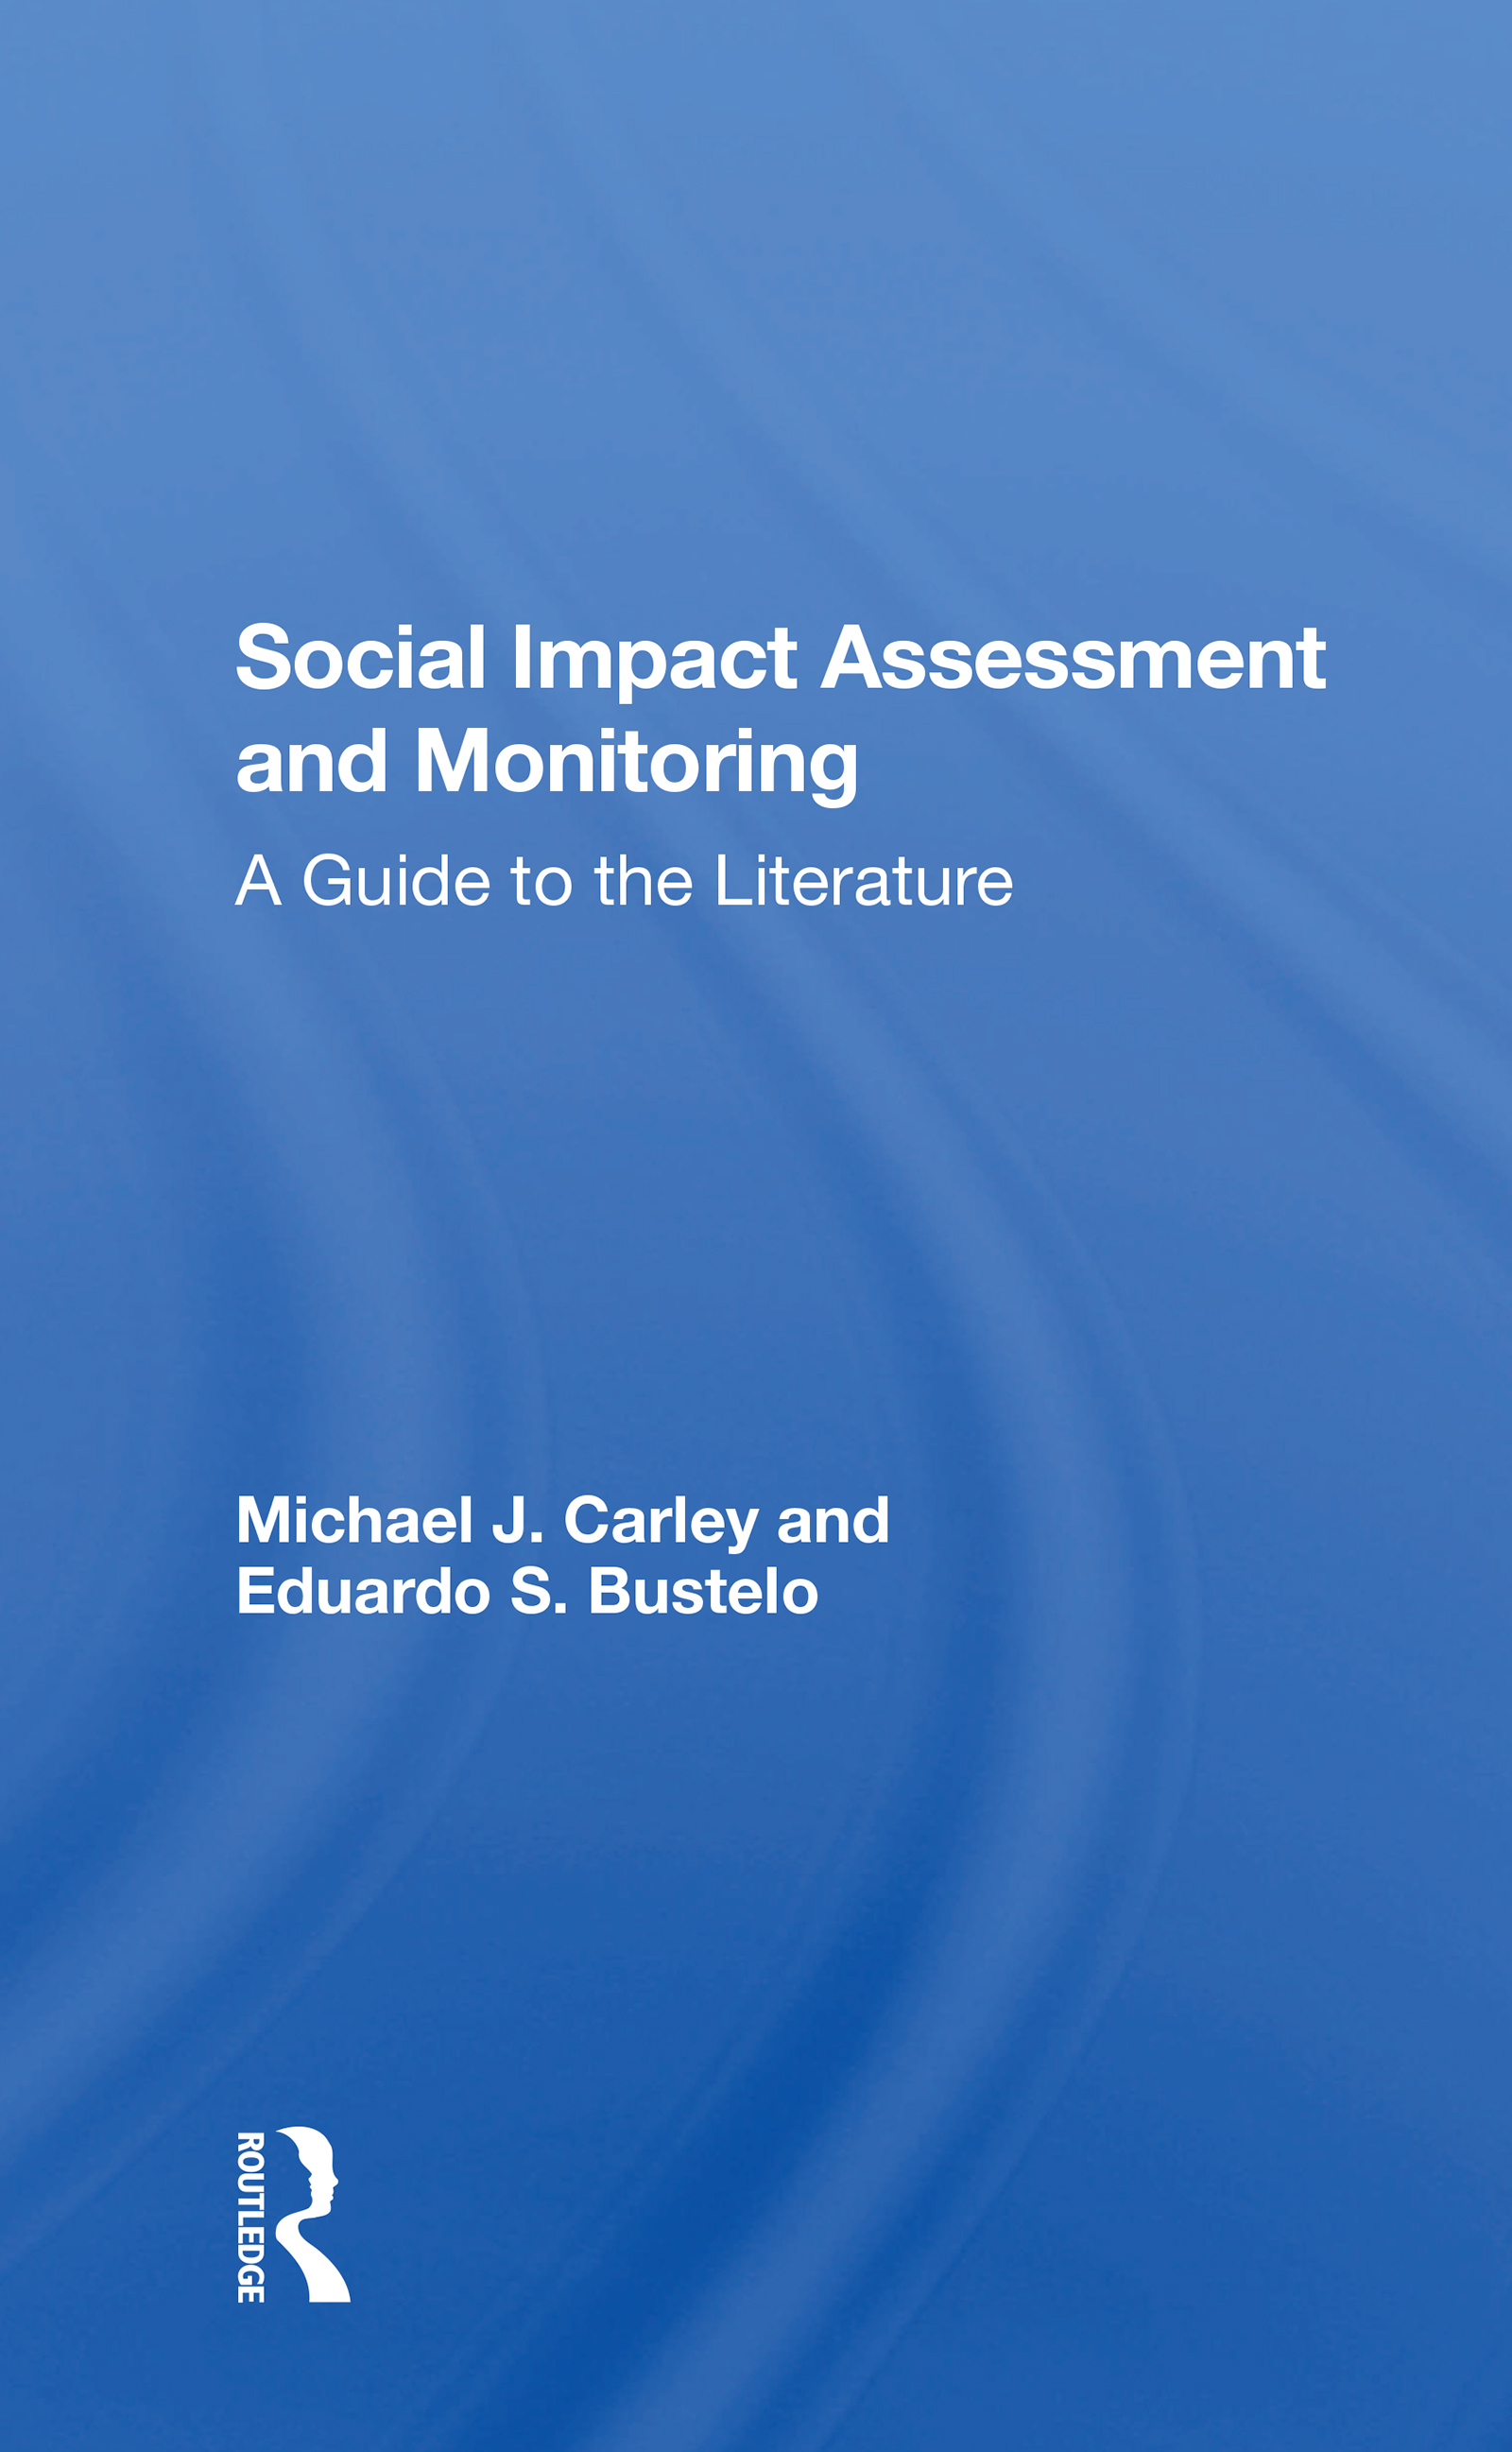 Social Impact Assessment and Monitoring